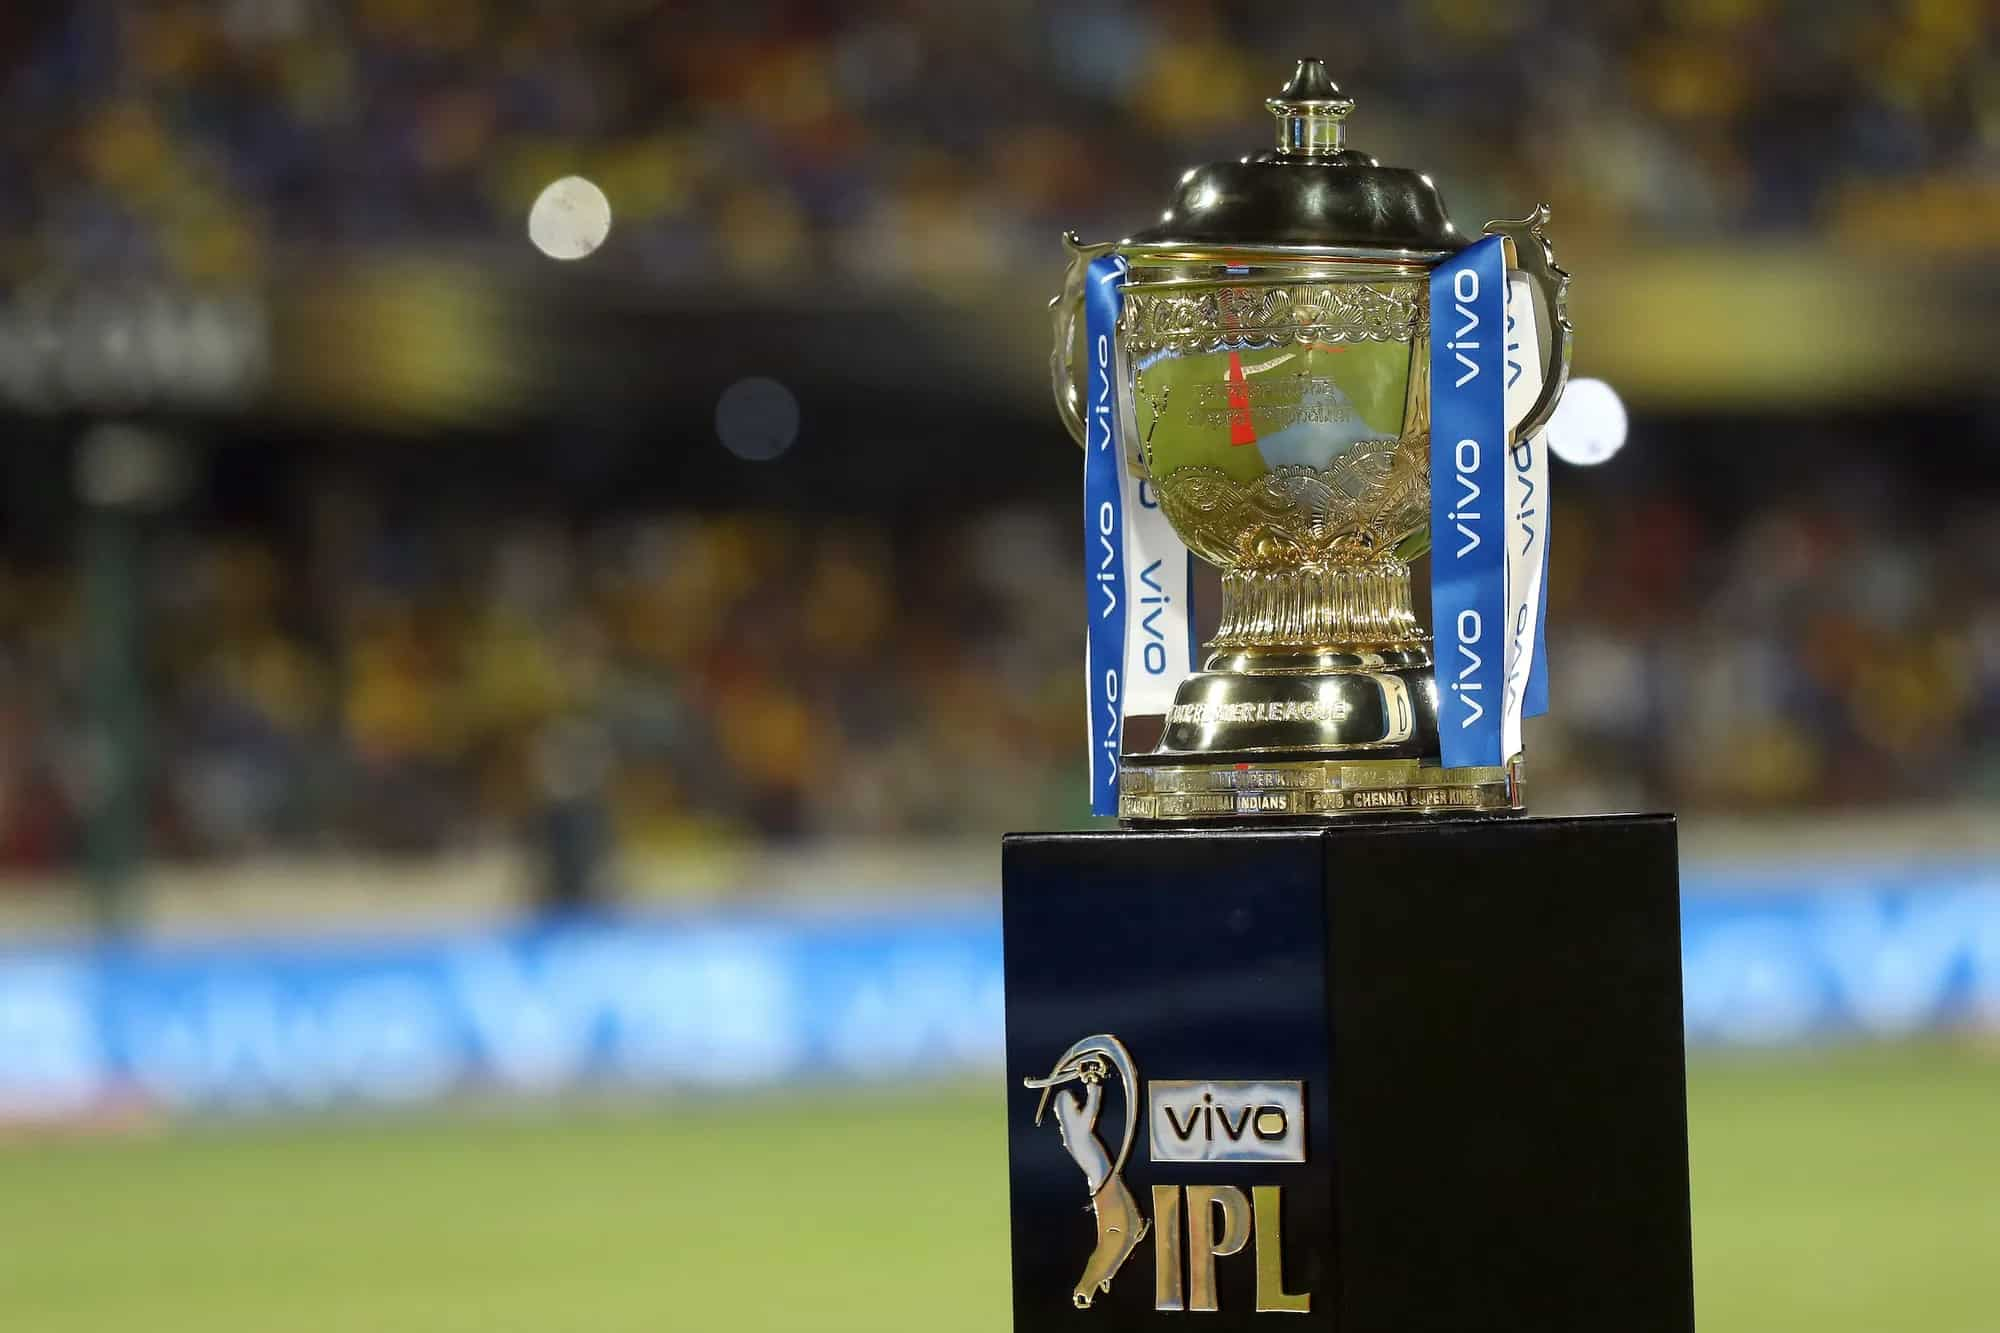 IPL 2021: BCCI Announced Schedule, Timings & Venues For The 14th Edition of Indian Premier League